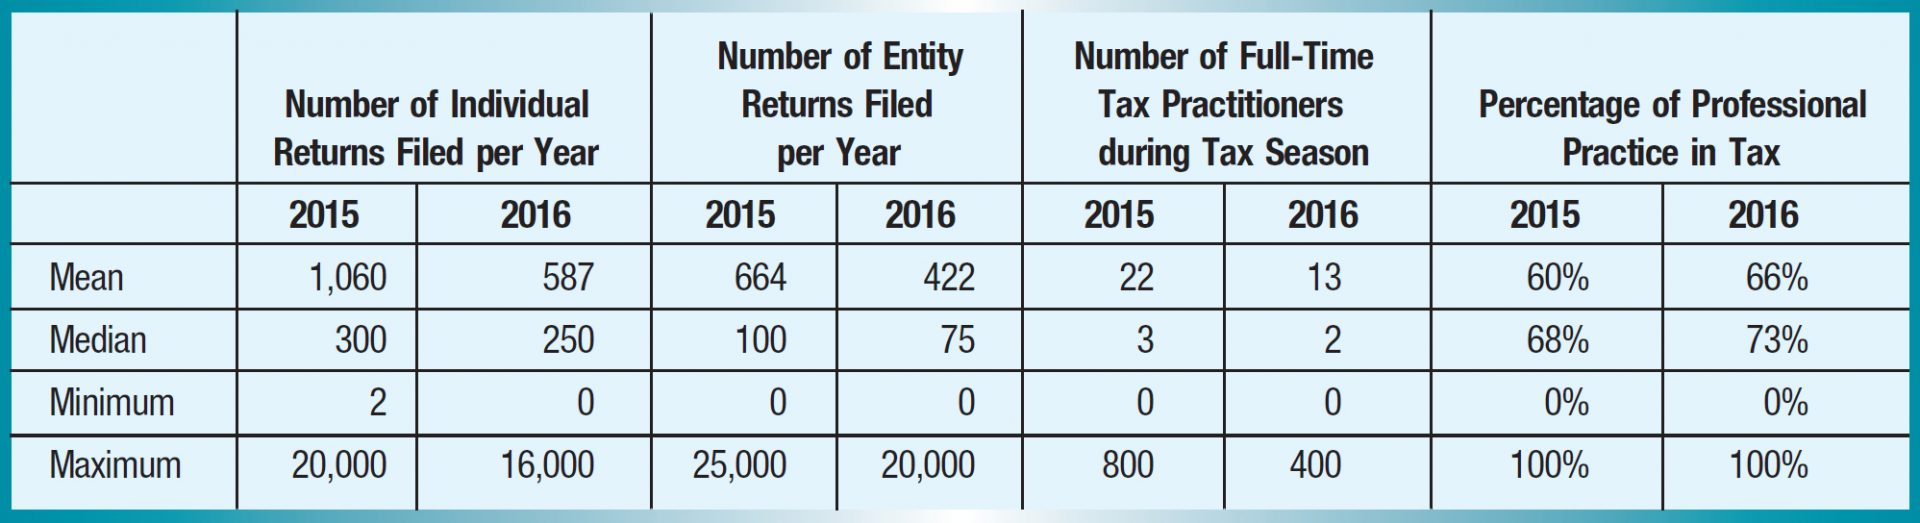 Number of Individual Returns Filed per Year; Number of Entity Returns Filed per Year; Number of Full-Time Tax Practitionersduring Tax Season; Percentage of Professional Practice in Tax 2015; 2016; 2015; 2016; 2015; 2016; 2015; 2016; Mean; 1,060; 587; 664; 422; 22; 13; 60%; 66%; Median; 300; 250; 100; 75; 3; 2; 68%; 73%; Minimum; 2; 0; 0; 0; 0; 0; 0%; 0%; Maximum; 20,000; 16,000; 25,000; 20,000; 800; 400; 100%; 100%;